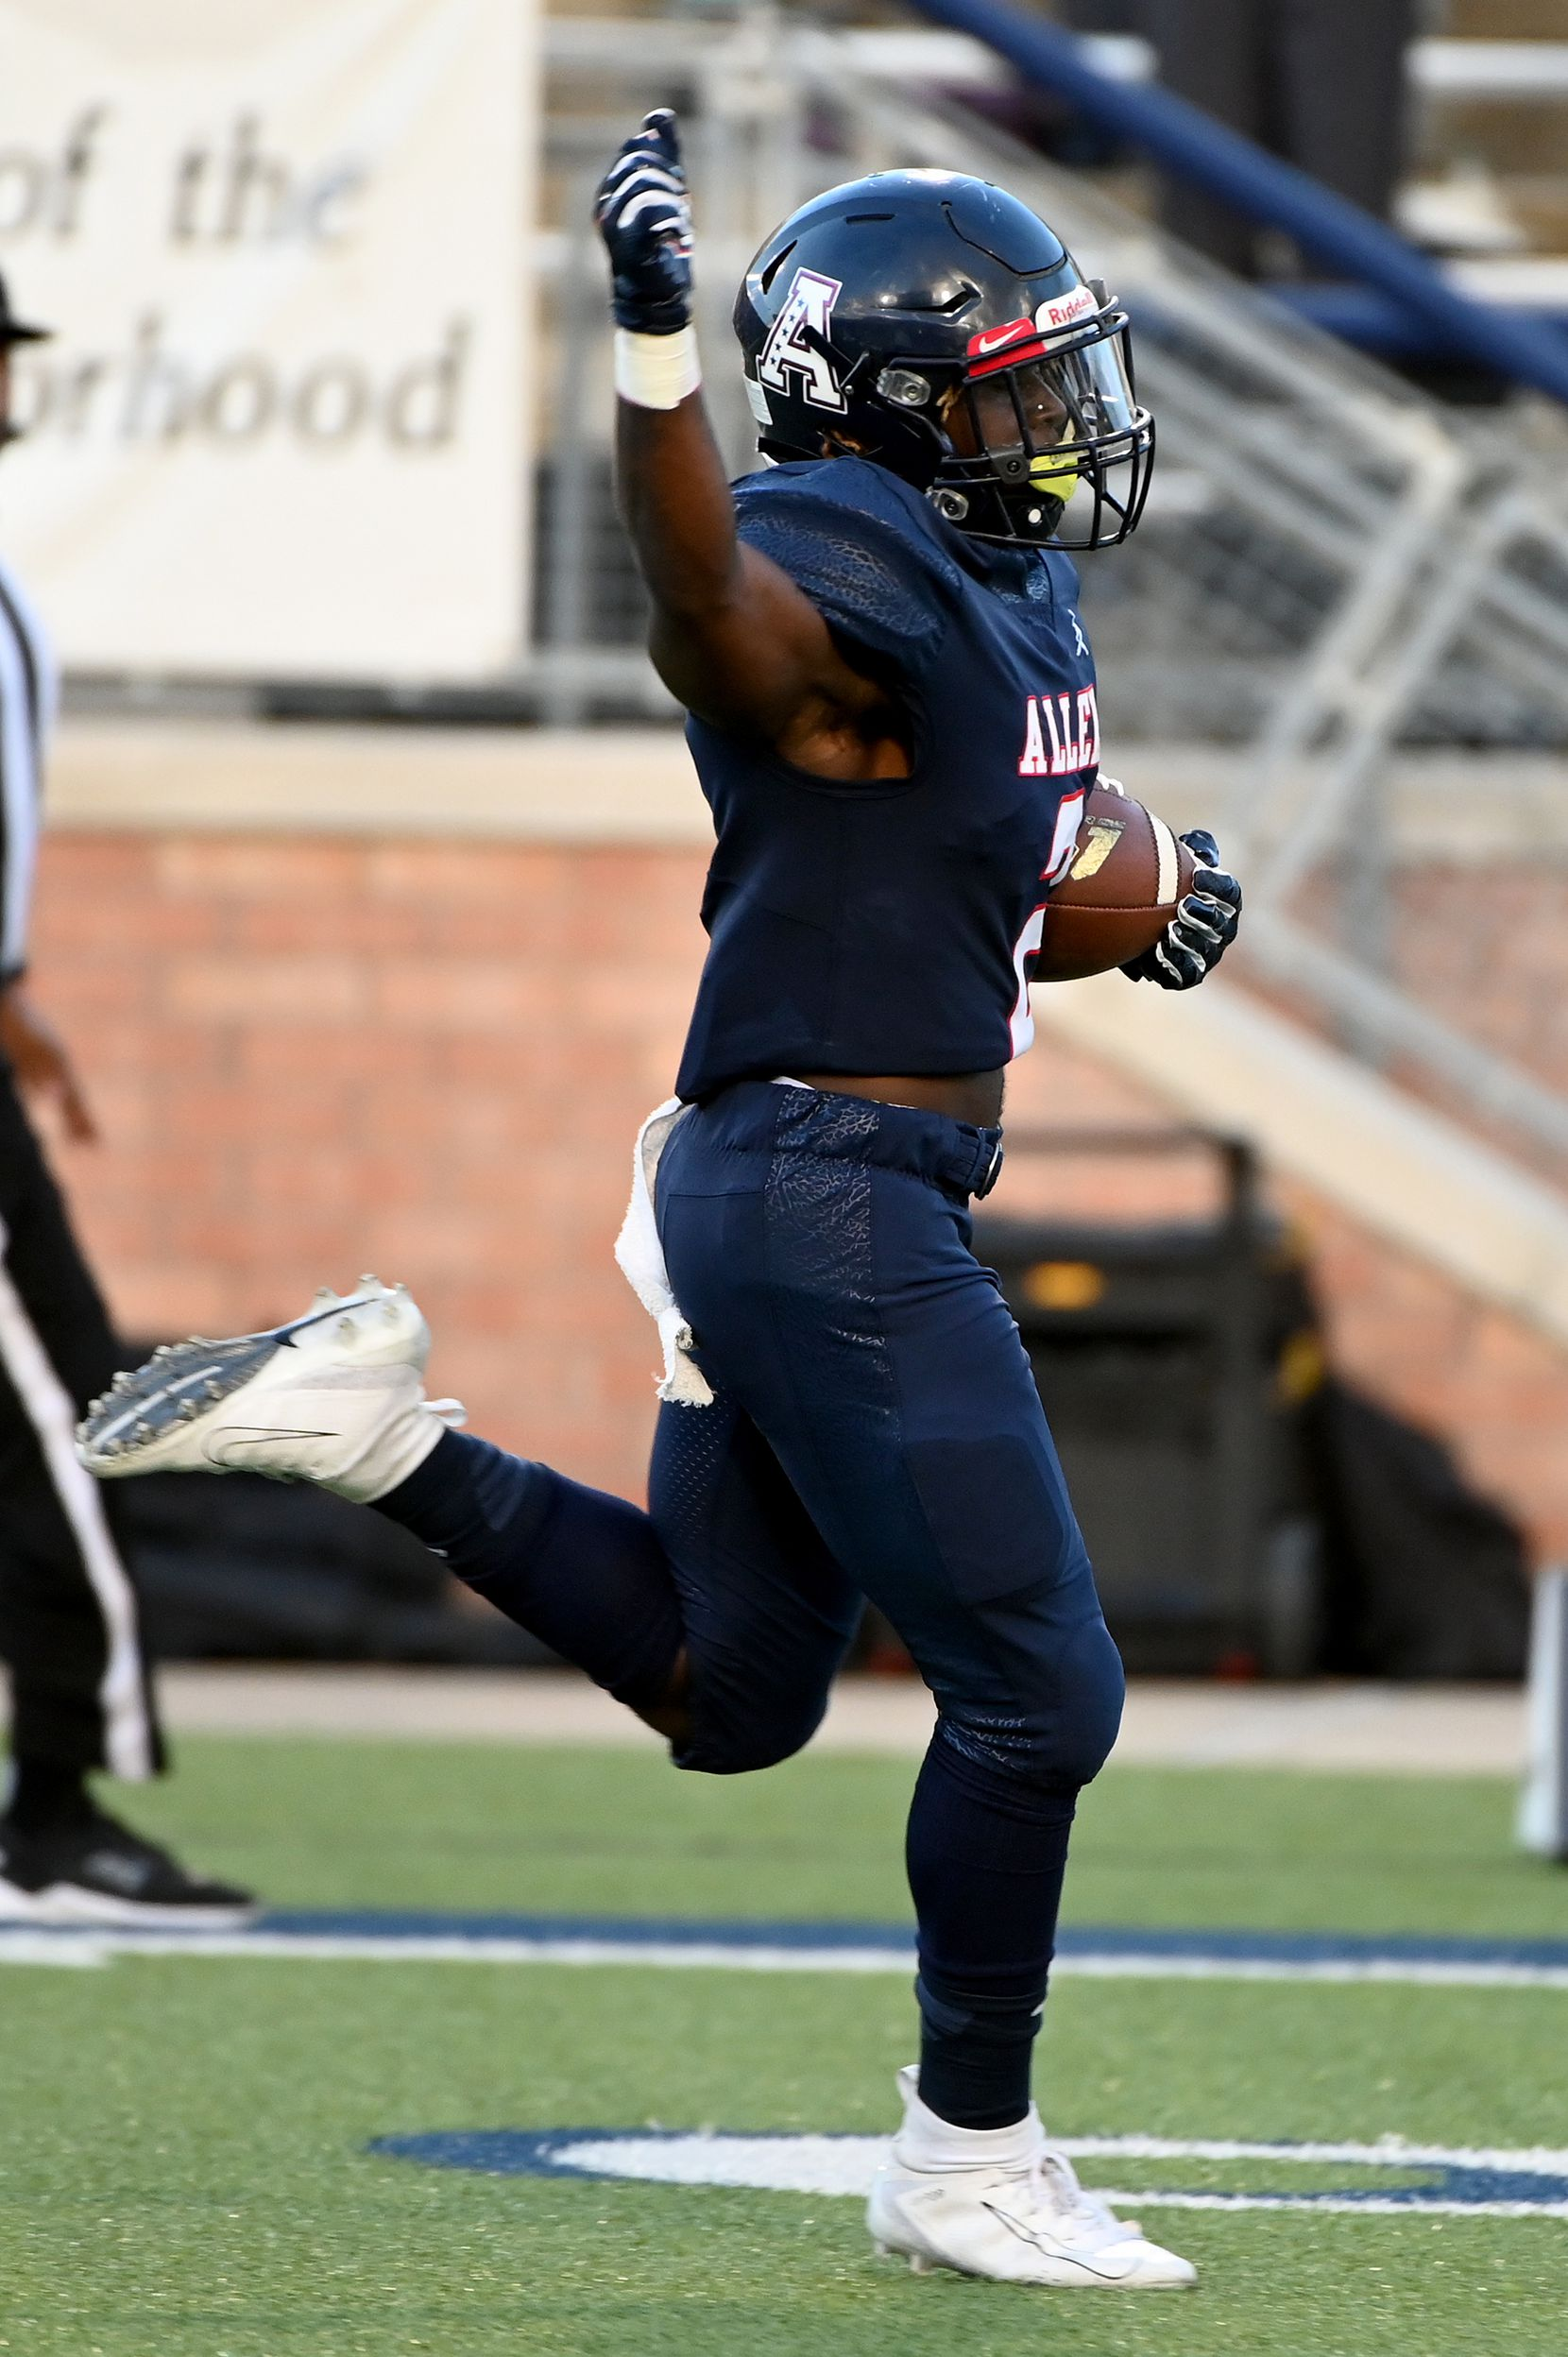 Allen's Jaylen Jenkins celebrate as he runs the opening kickoff of the 2021 season back for a touchdown in the first half during a high school football game between Plano East and Allen, Friday, Aug. 27, 2021, in Allen, Texas. (Matt Strasen/Special Contributor)